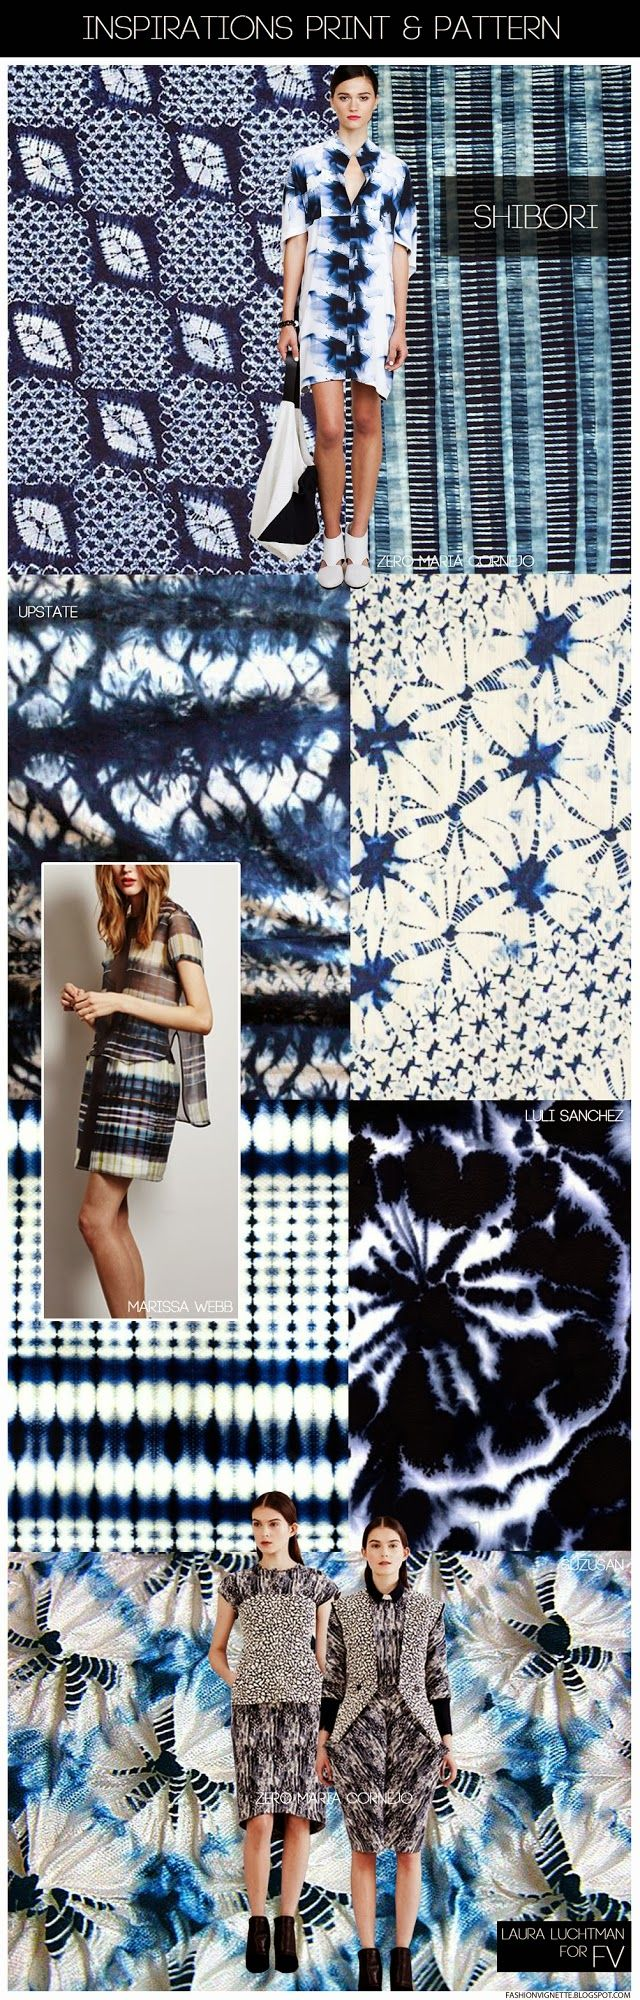 FASHION VIGNETTE: [ INSPIRATIONS PRINT + PATTERN ] KUKKA by Laura Luchtman - SS 2015 SHIBORI